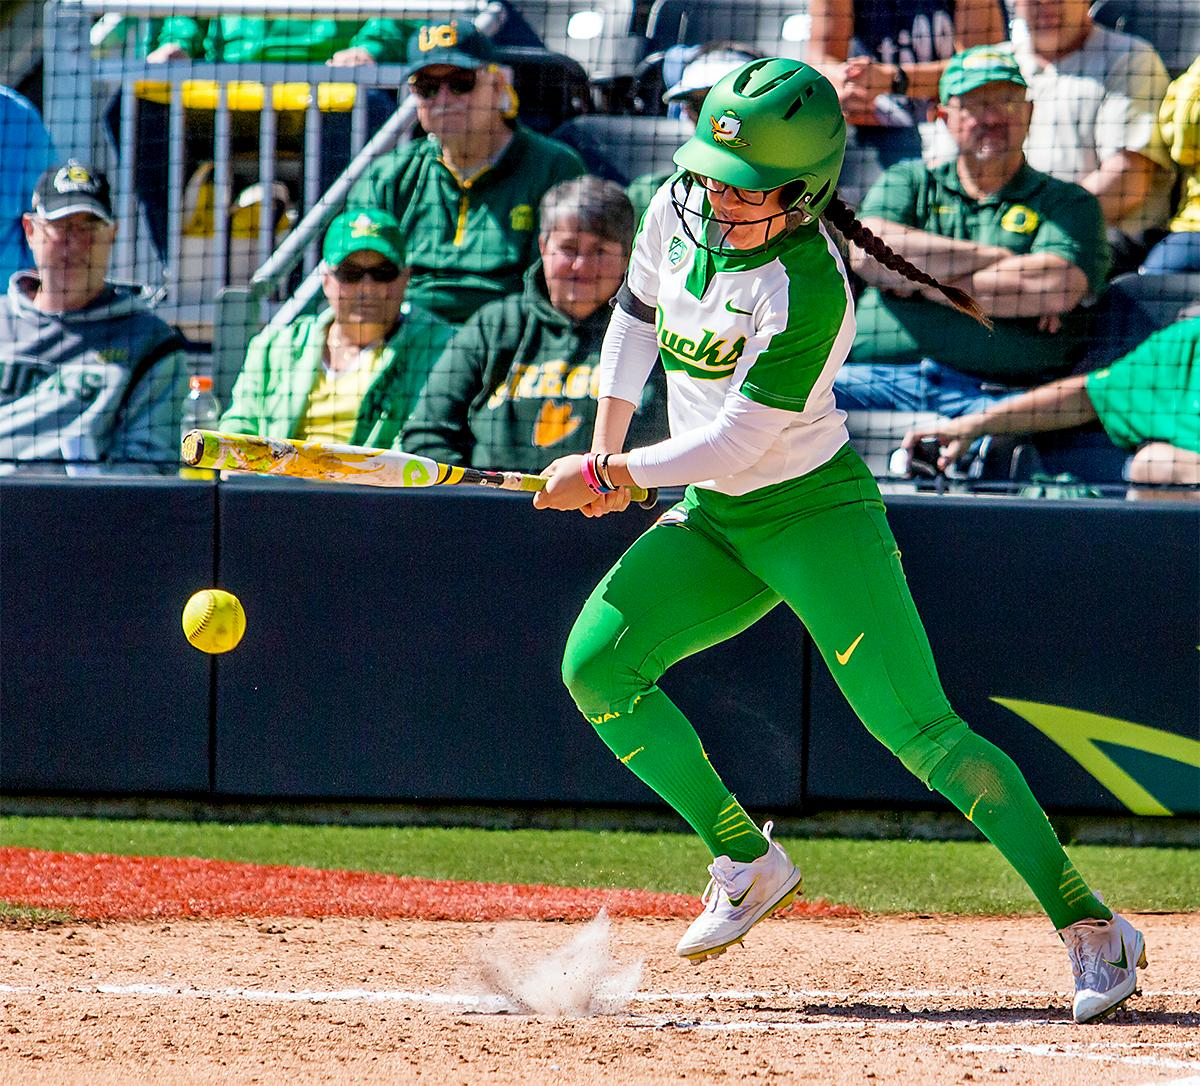 The Duck's Danica Mercado (#2) takes a swing at the ball. The Oregon Ducks Softball team took their third win over the Arizona Sun Devils, 1-0, in the final game of the weekends series that saw the game go into an eighth inning before the Duck?s Mia Camuso (#7) scored a hit allowing teammate Haley Cruse (#26) to run into home plate for a point. The Ducks are now 33-0 this season and will next play a double header against Portland State on Tuesday, April 4 at Jane Sanders Stadium. Photo by August Frank, Oregon News Lab